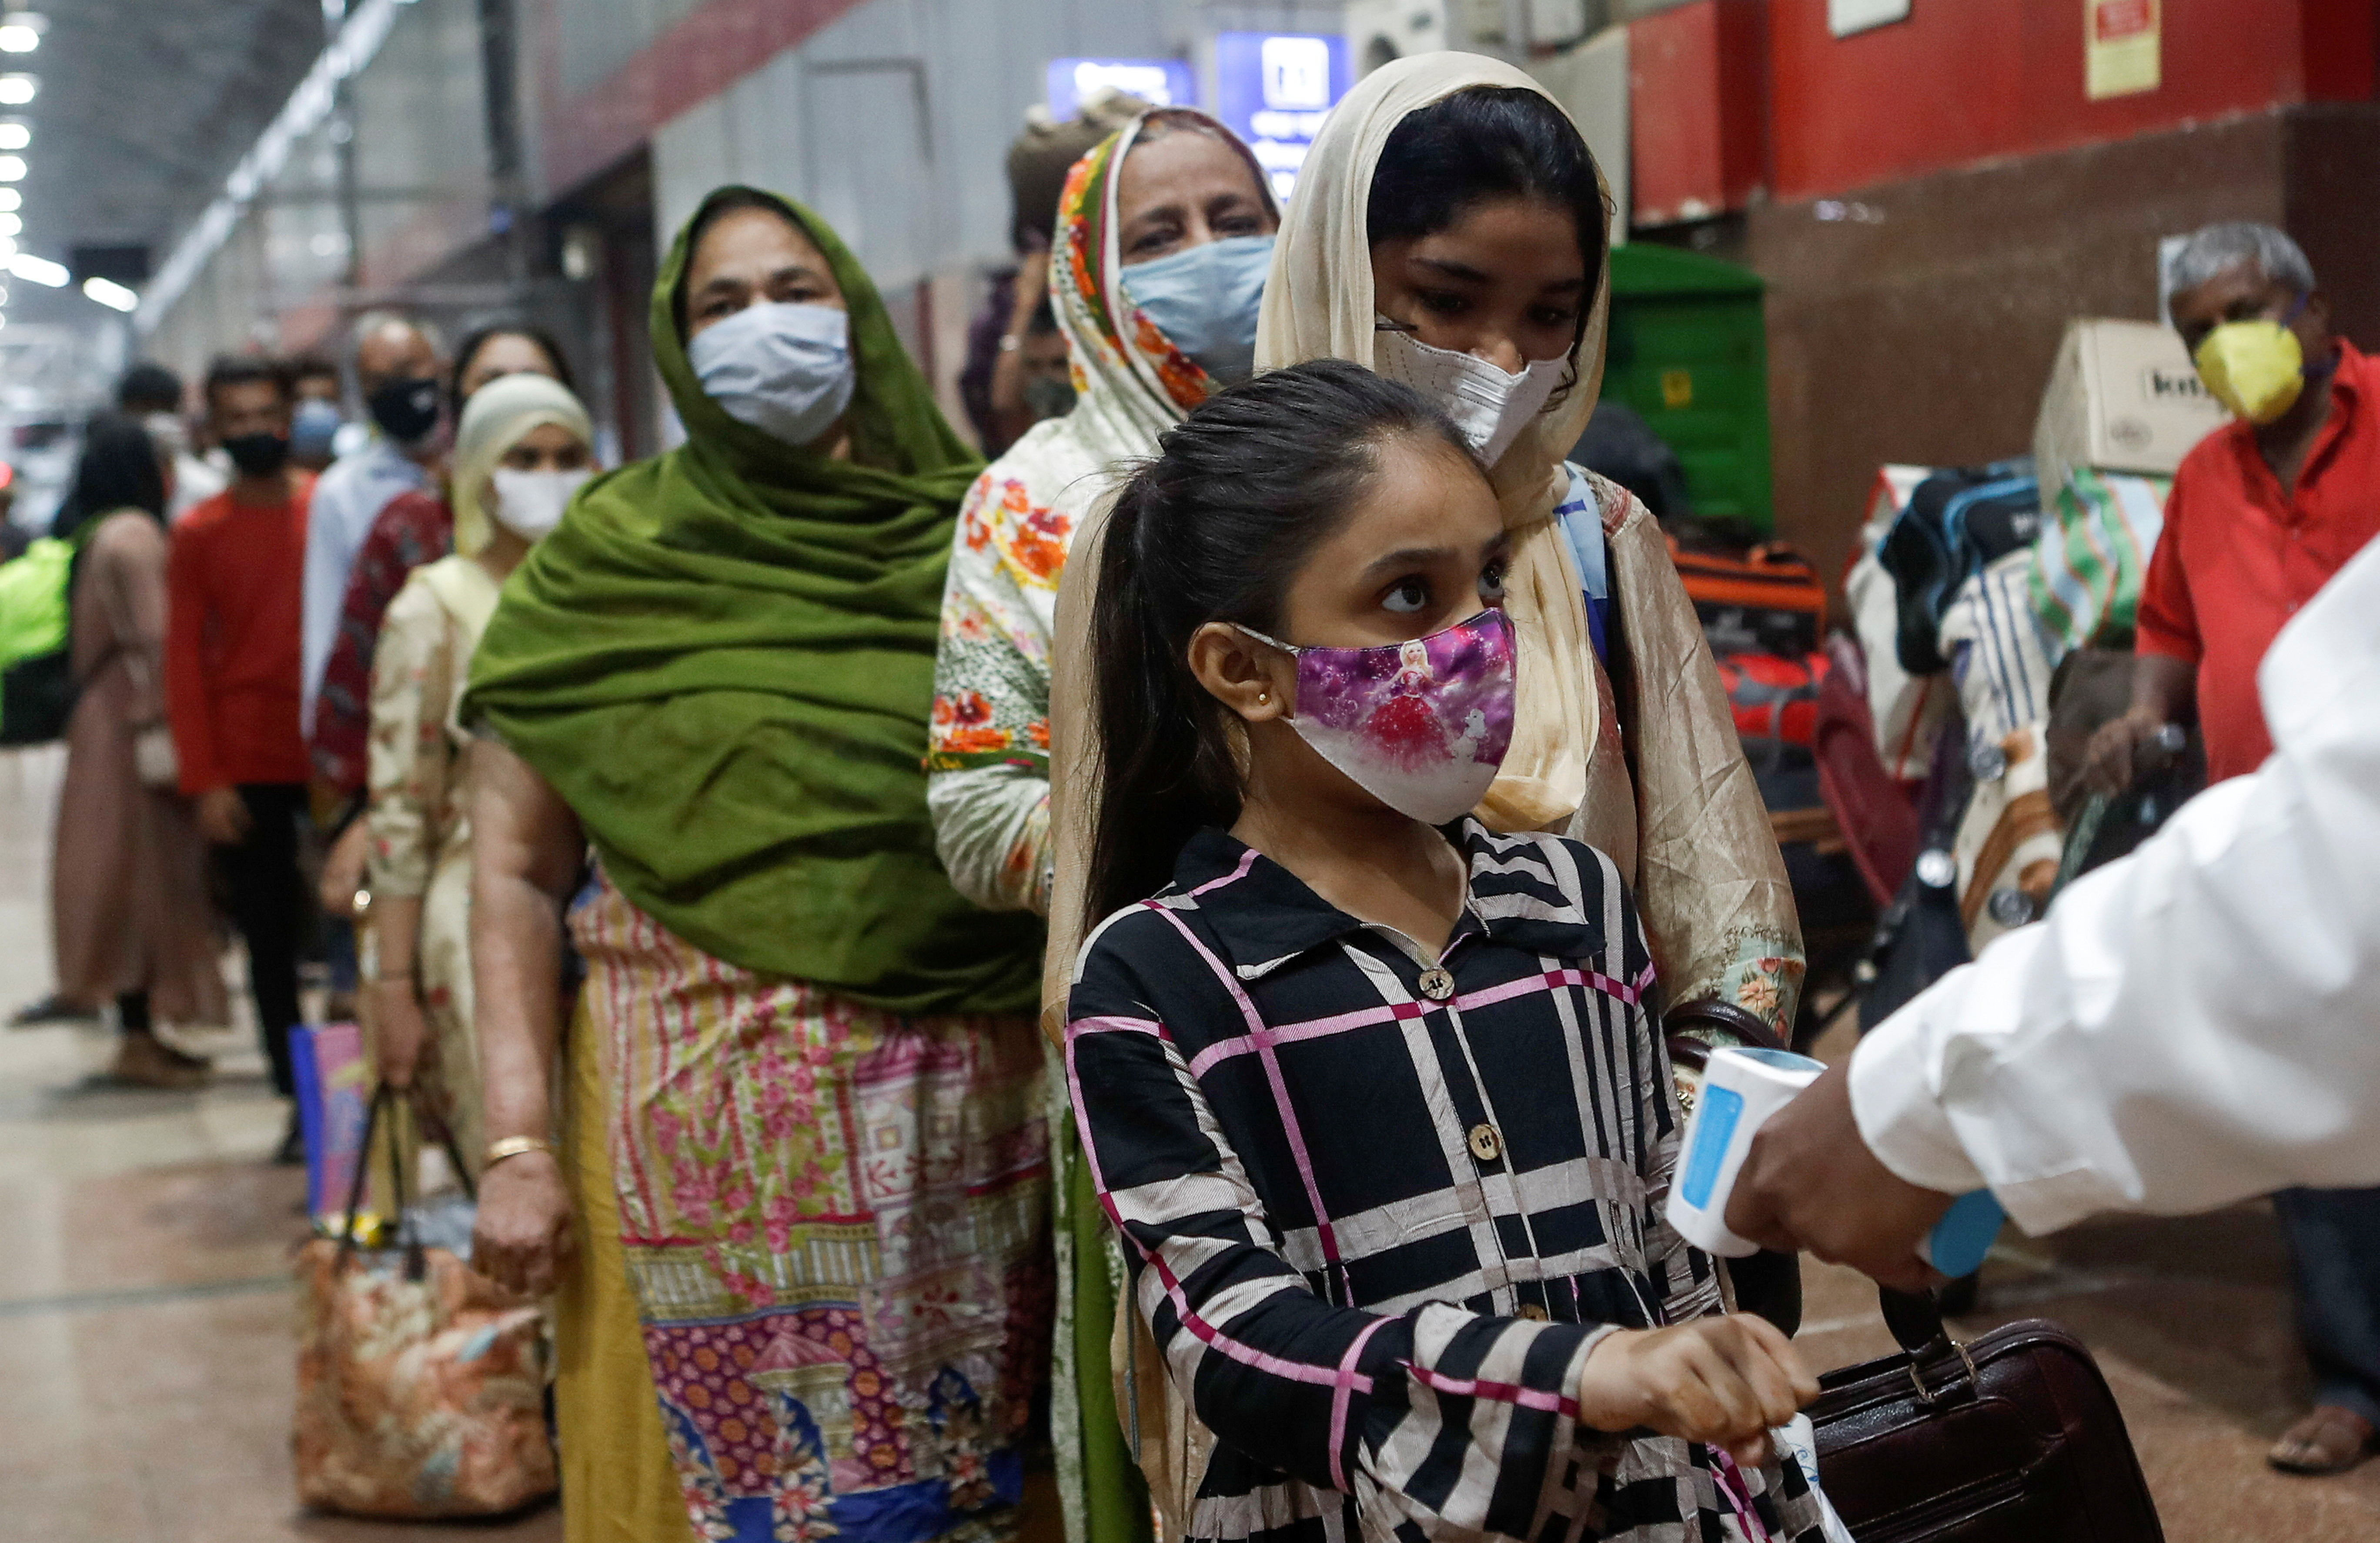 Passengers wait in line to get their temperature checked at a railway station, amid the spread of the coronavirus disease (COVID-19), in Mumbai, India November 26, 2020. REUTERS/Francis Mascarenhas - RC2XAK92D1AC